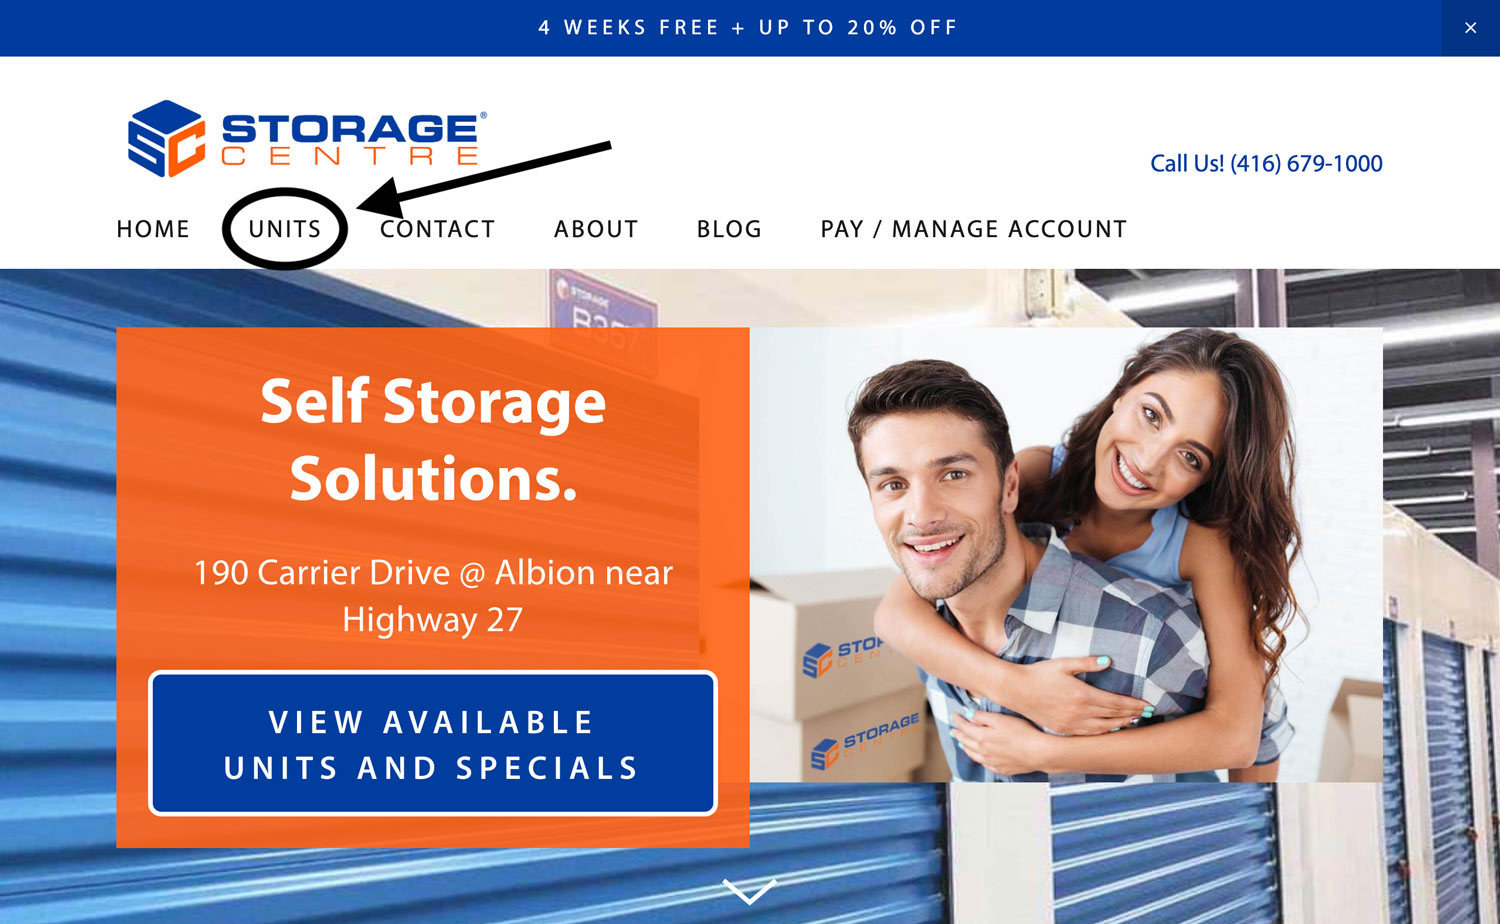 Storage-Centre-Rent-1.jpg